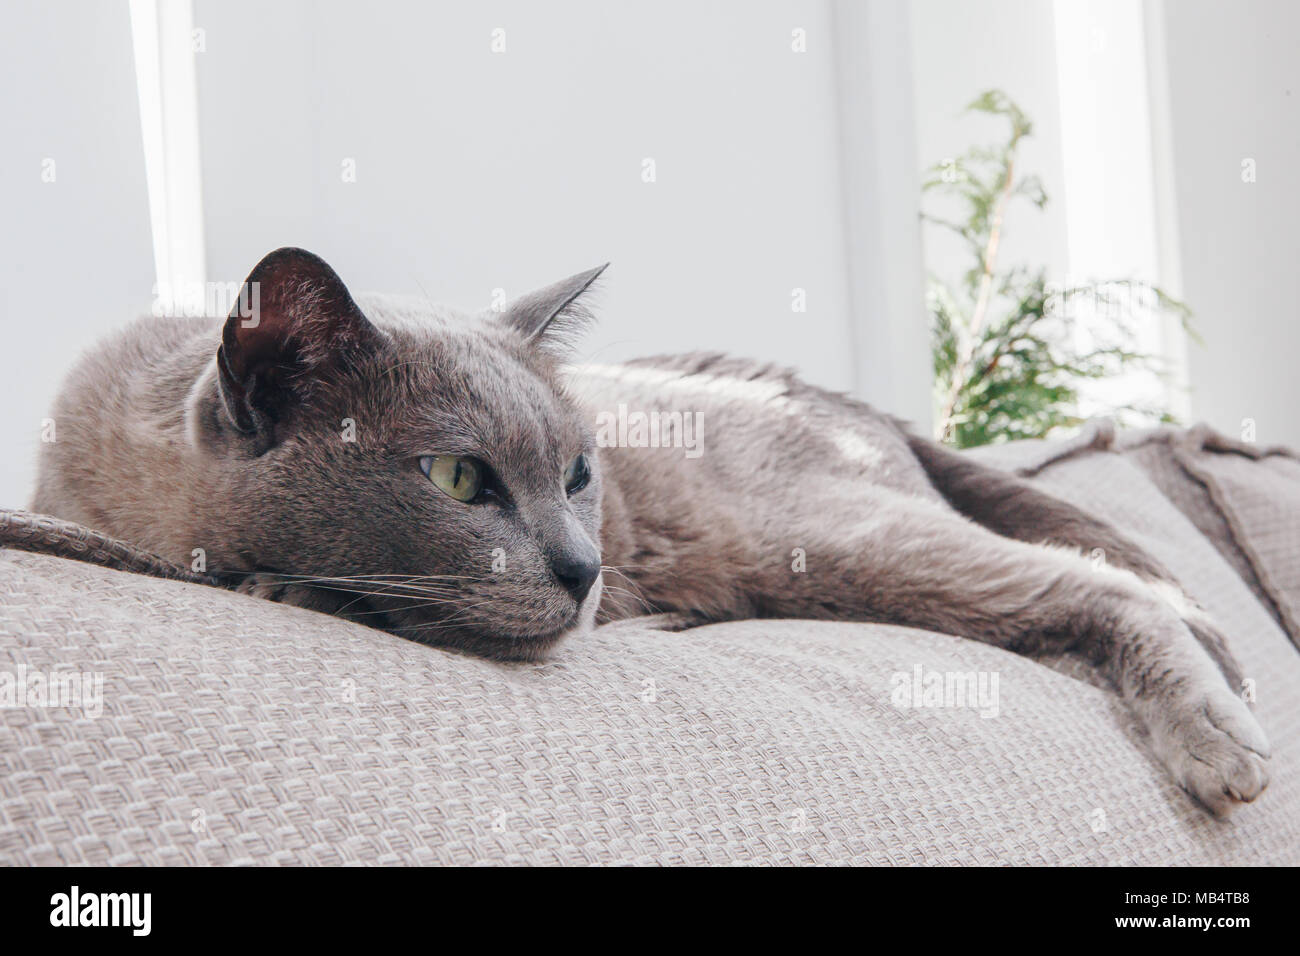 Grey burmese cat lying on a couch - Stock Image